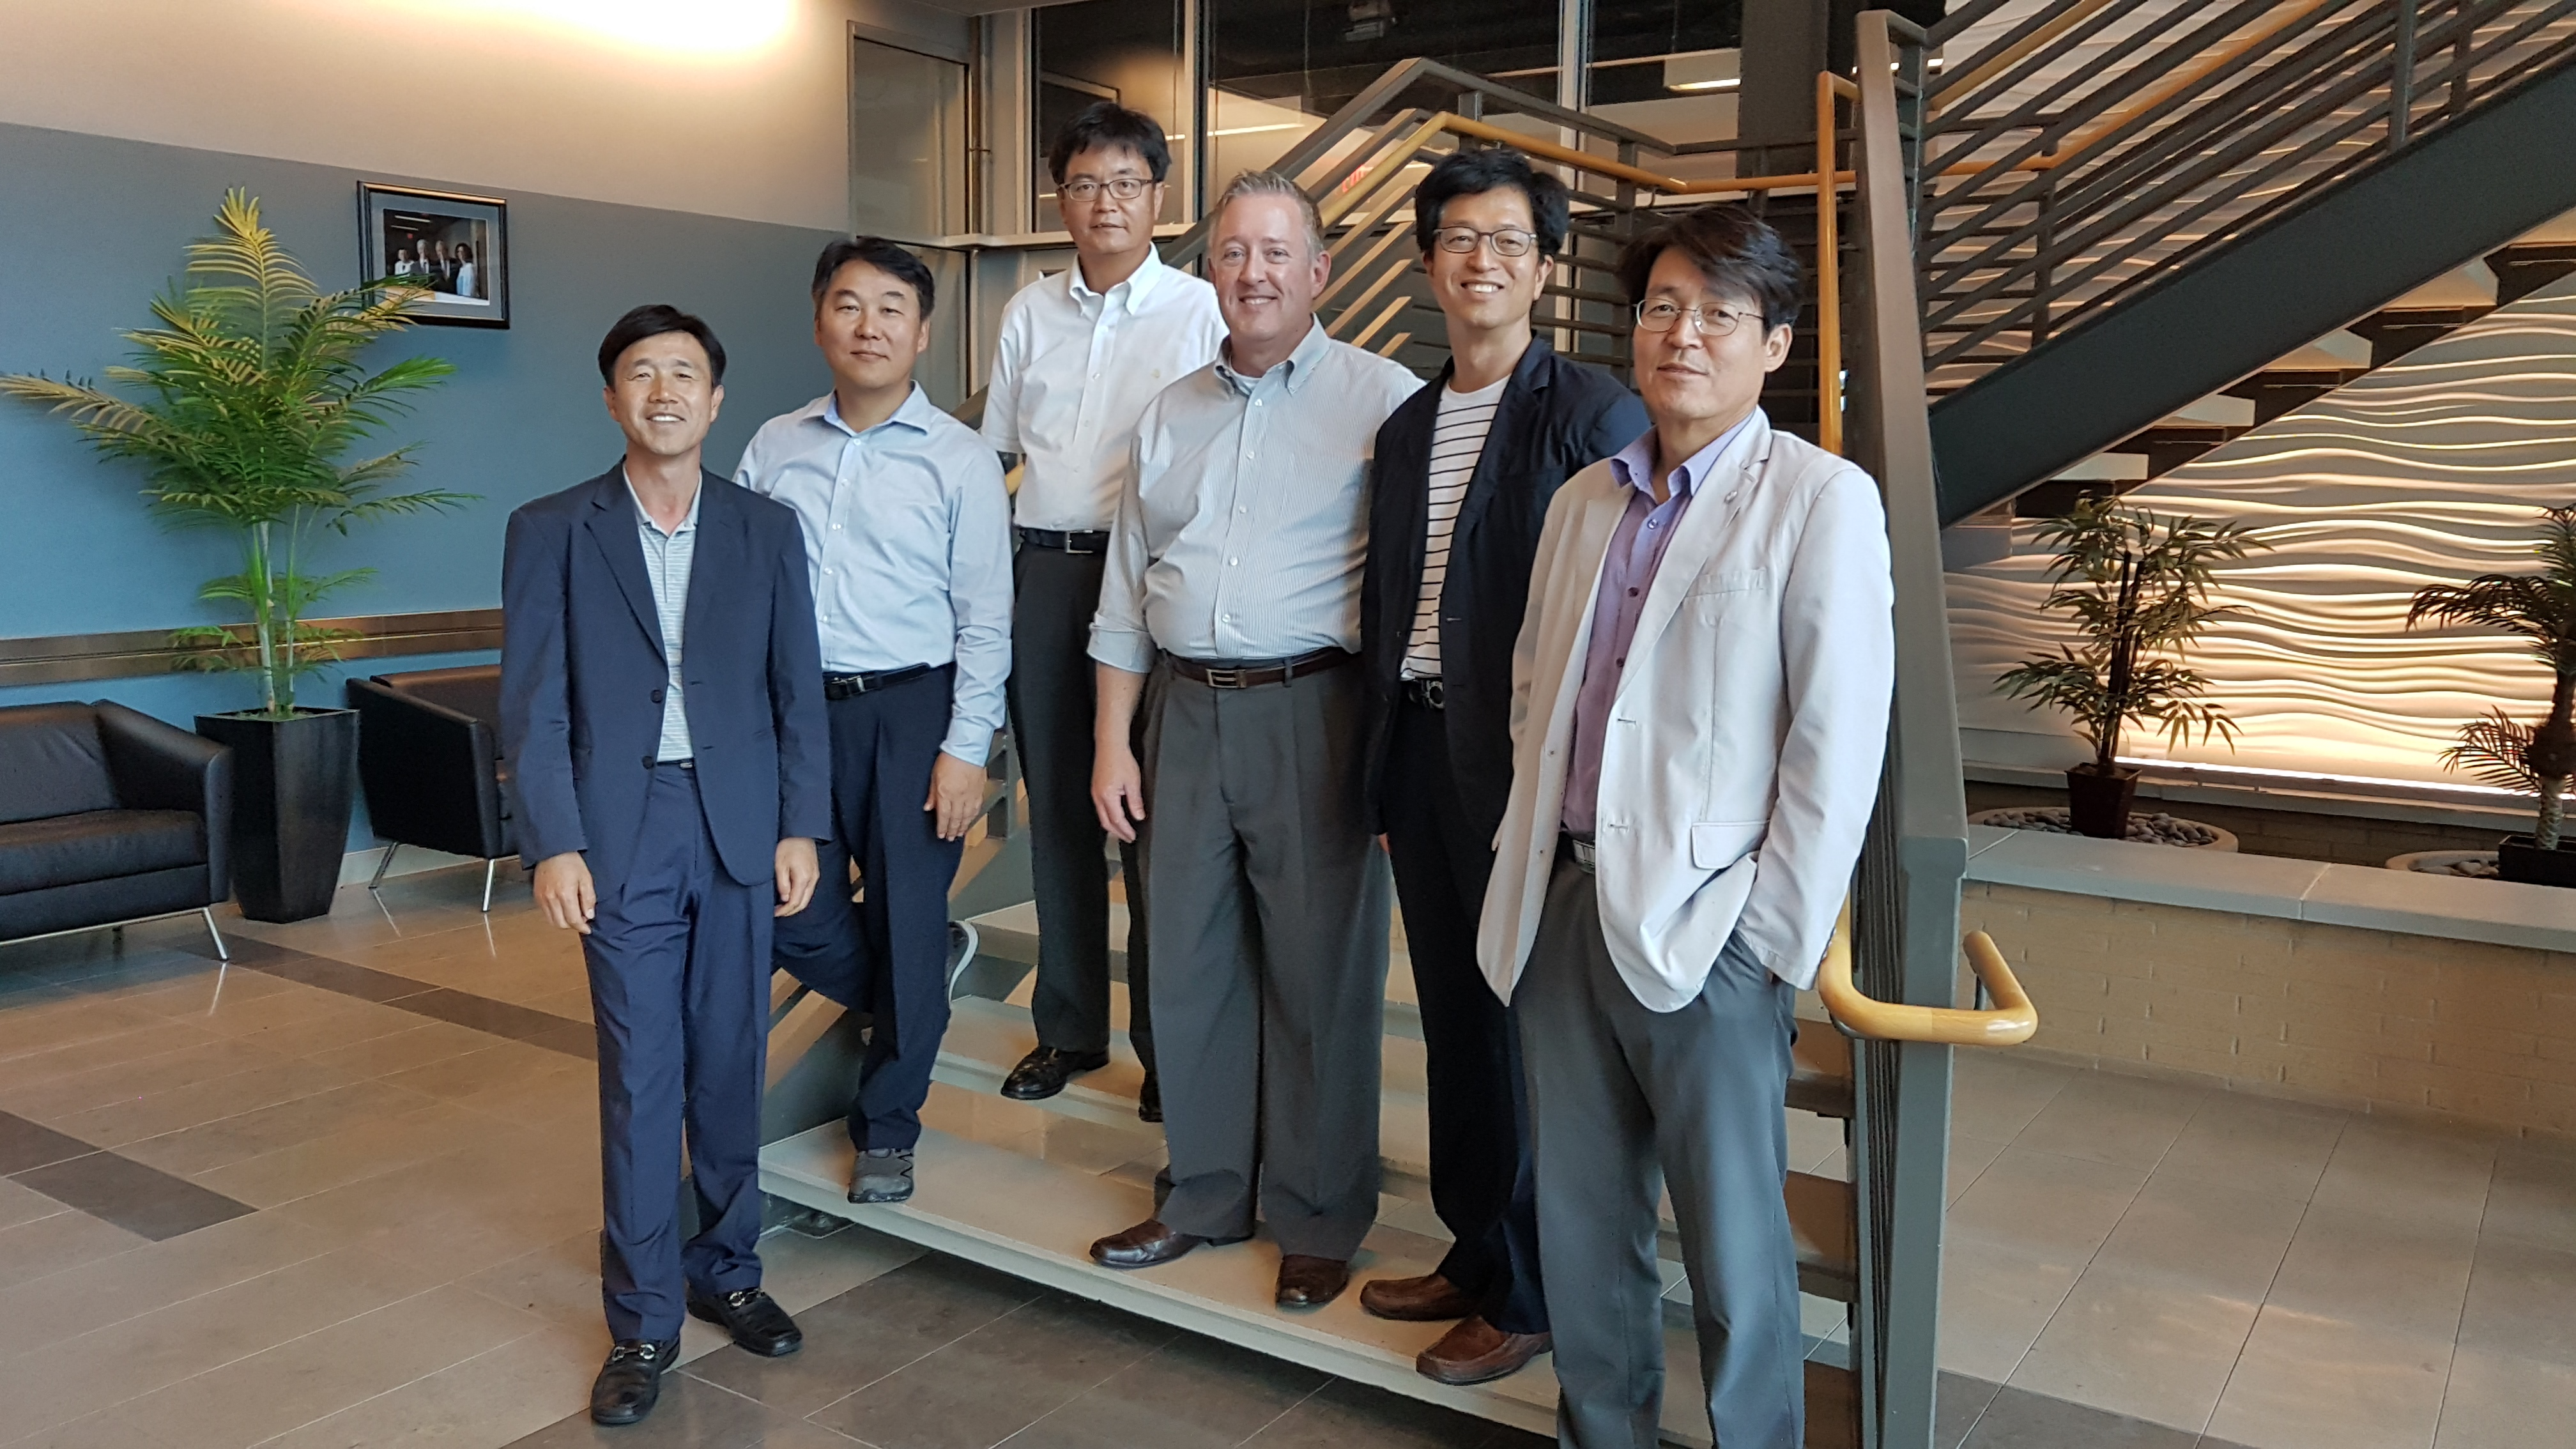 Curt Davis with the team from Korean  Nuclear Power he trained in PM and BA at SUNY Stony Brook